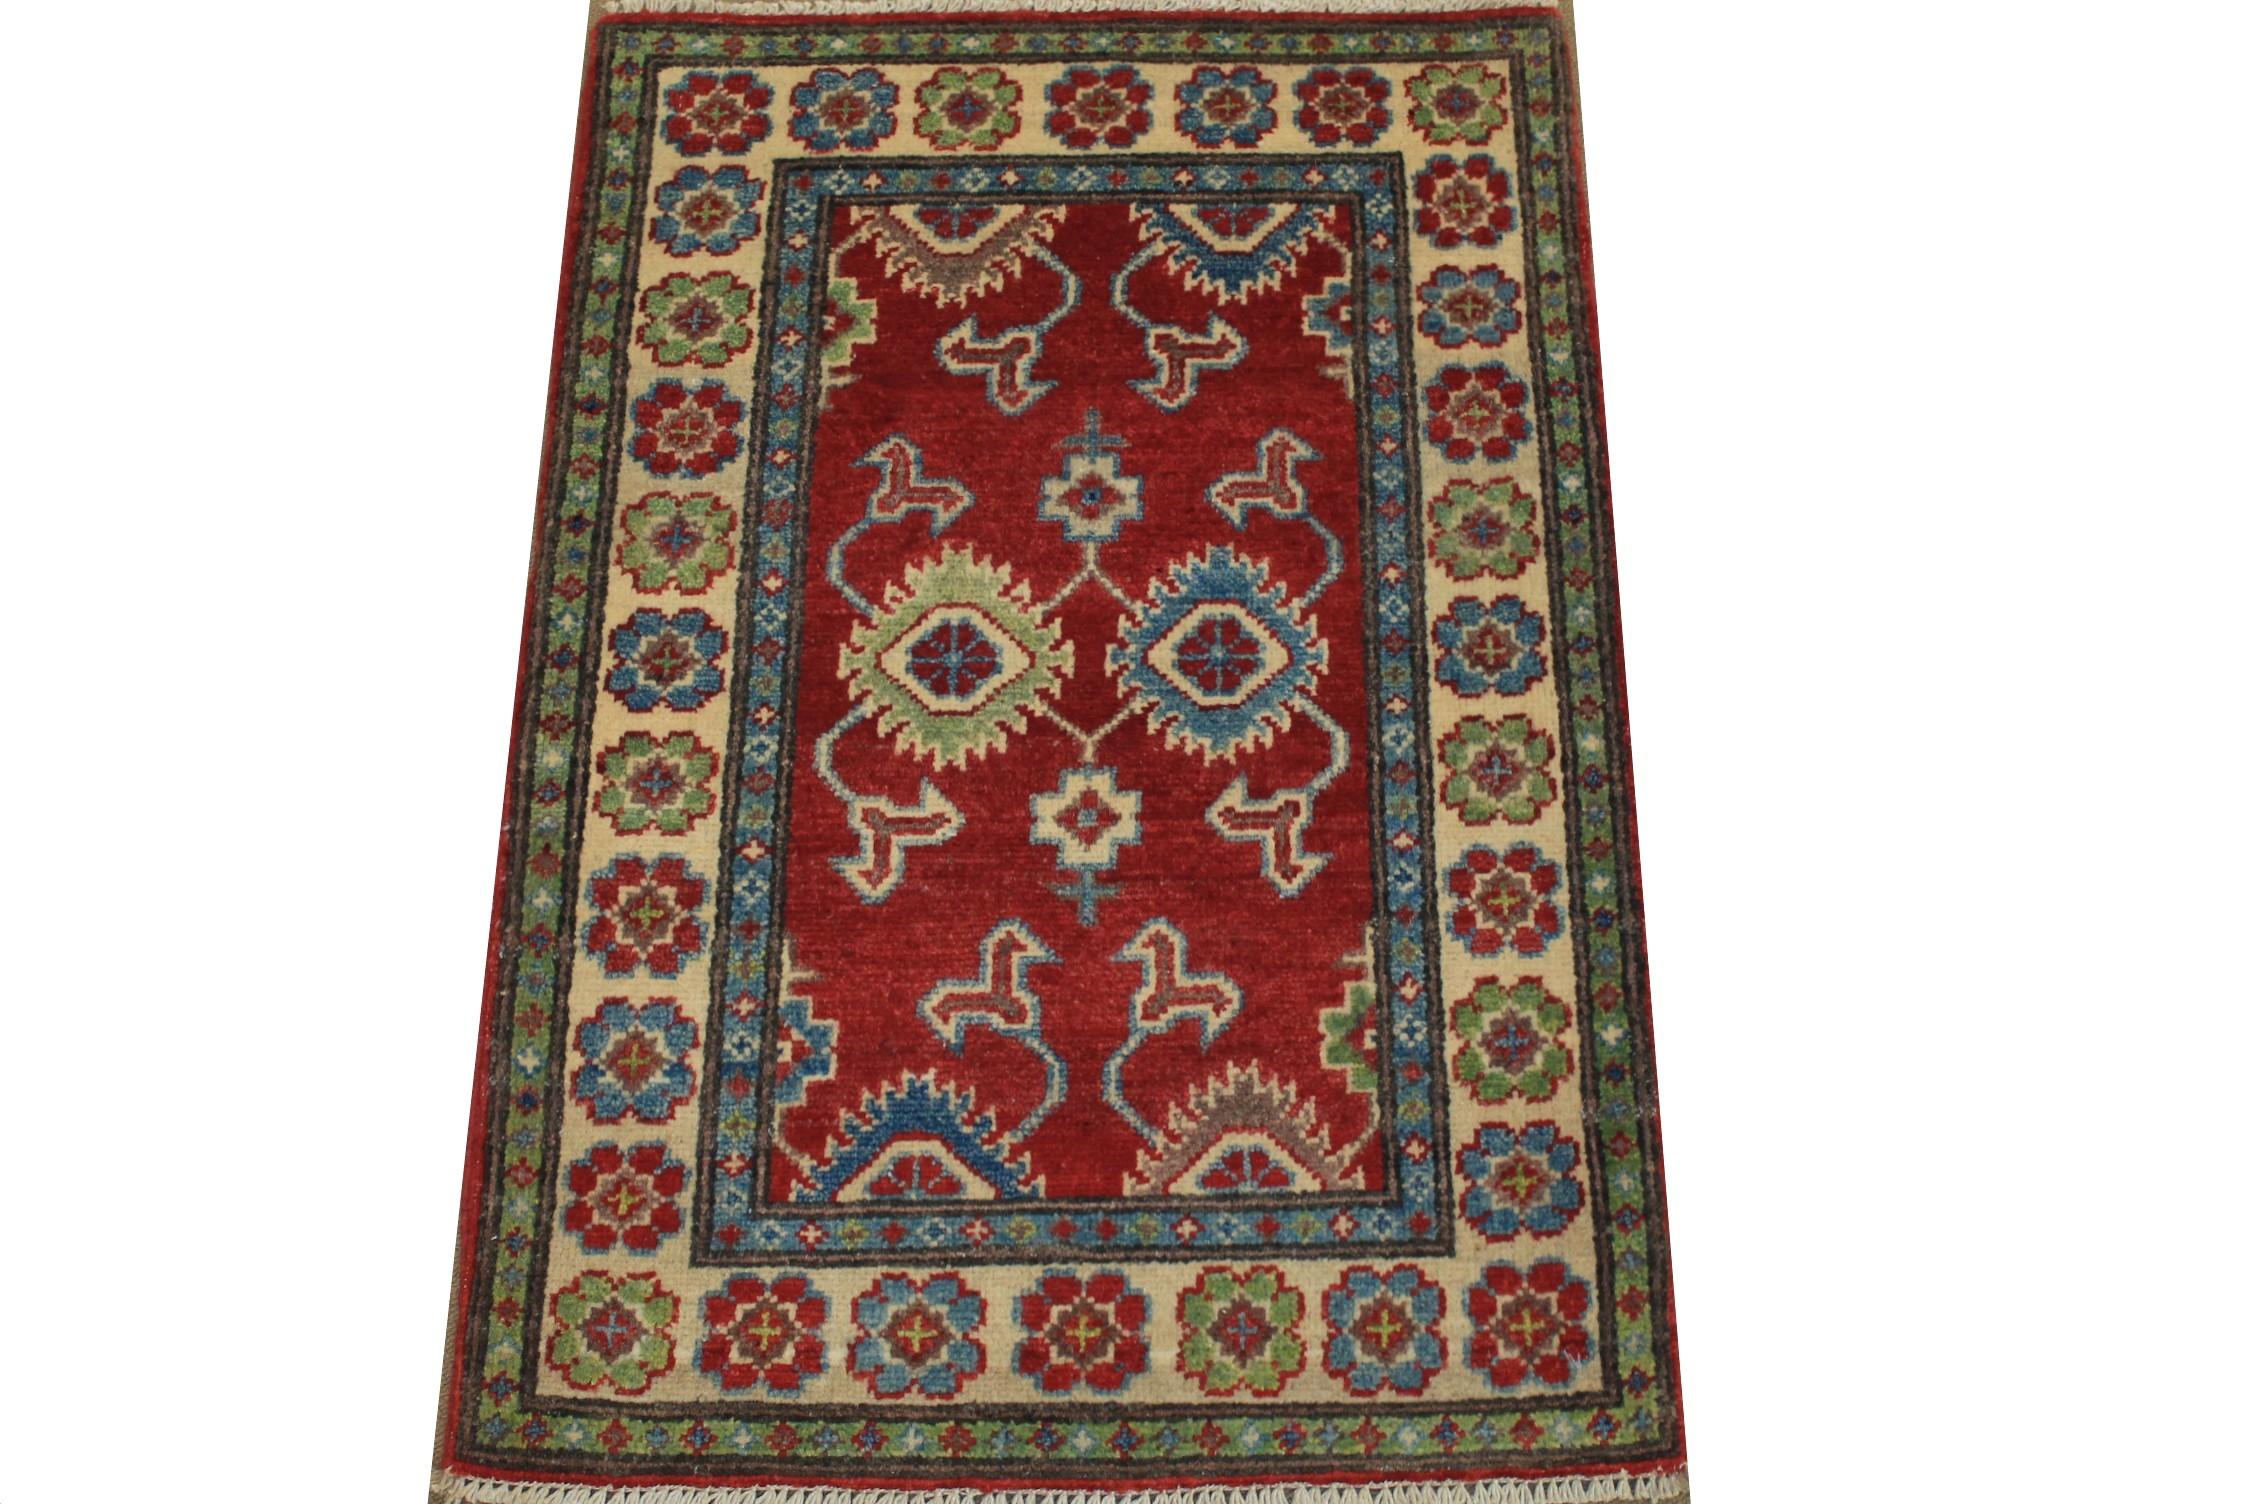 2X3 Kazak Hand Knotted Wool Area Rug - MR024531